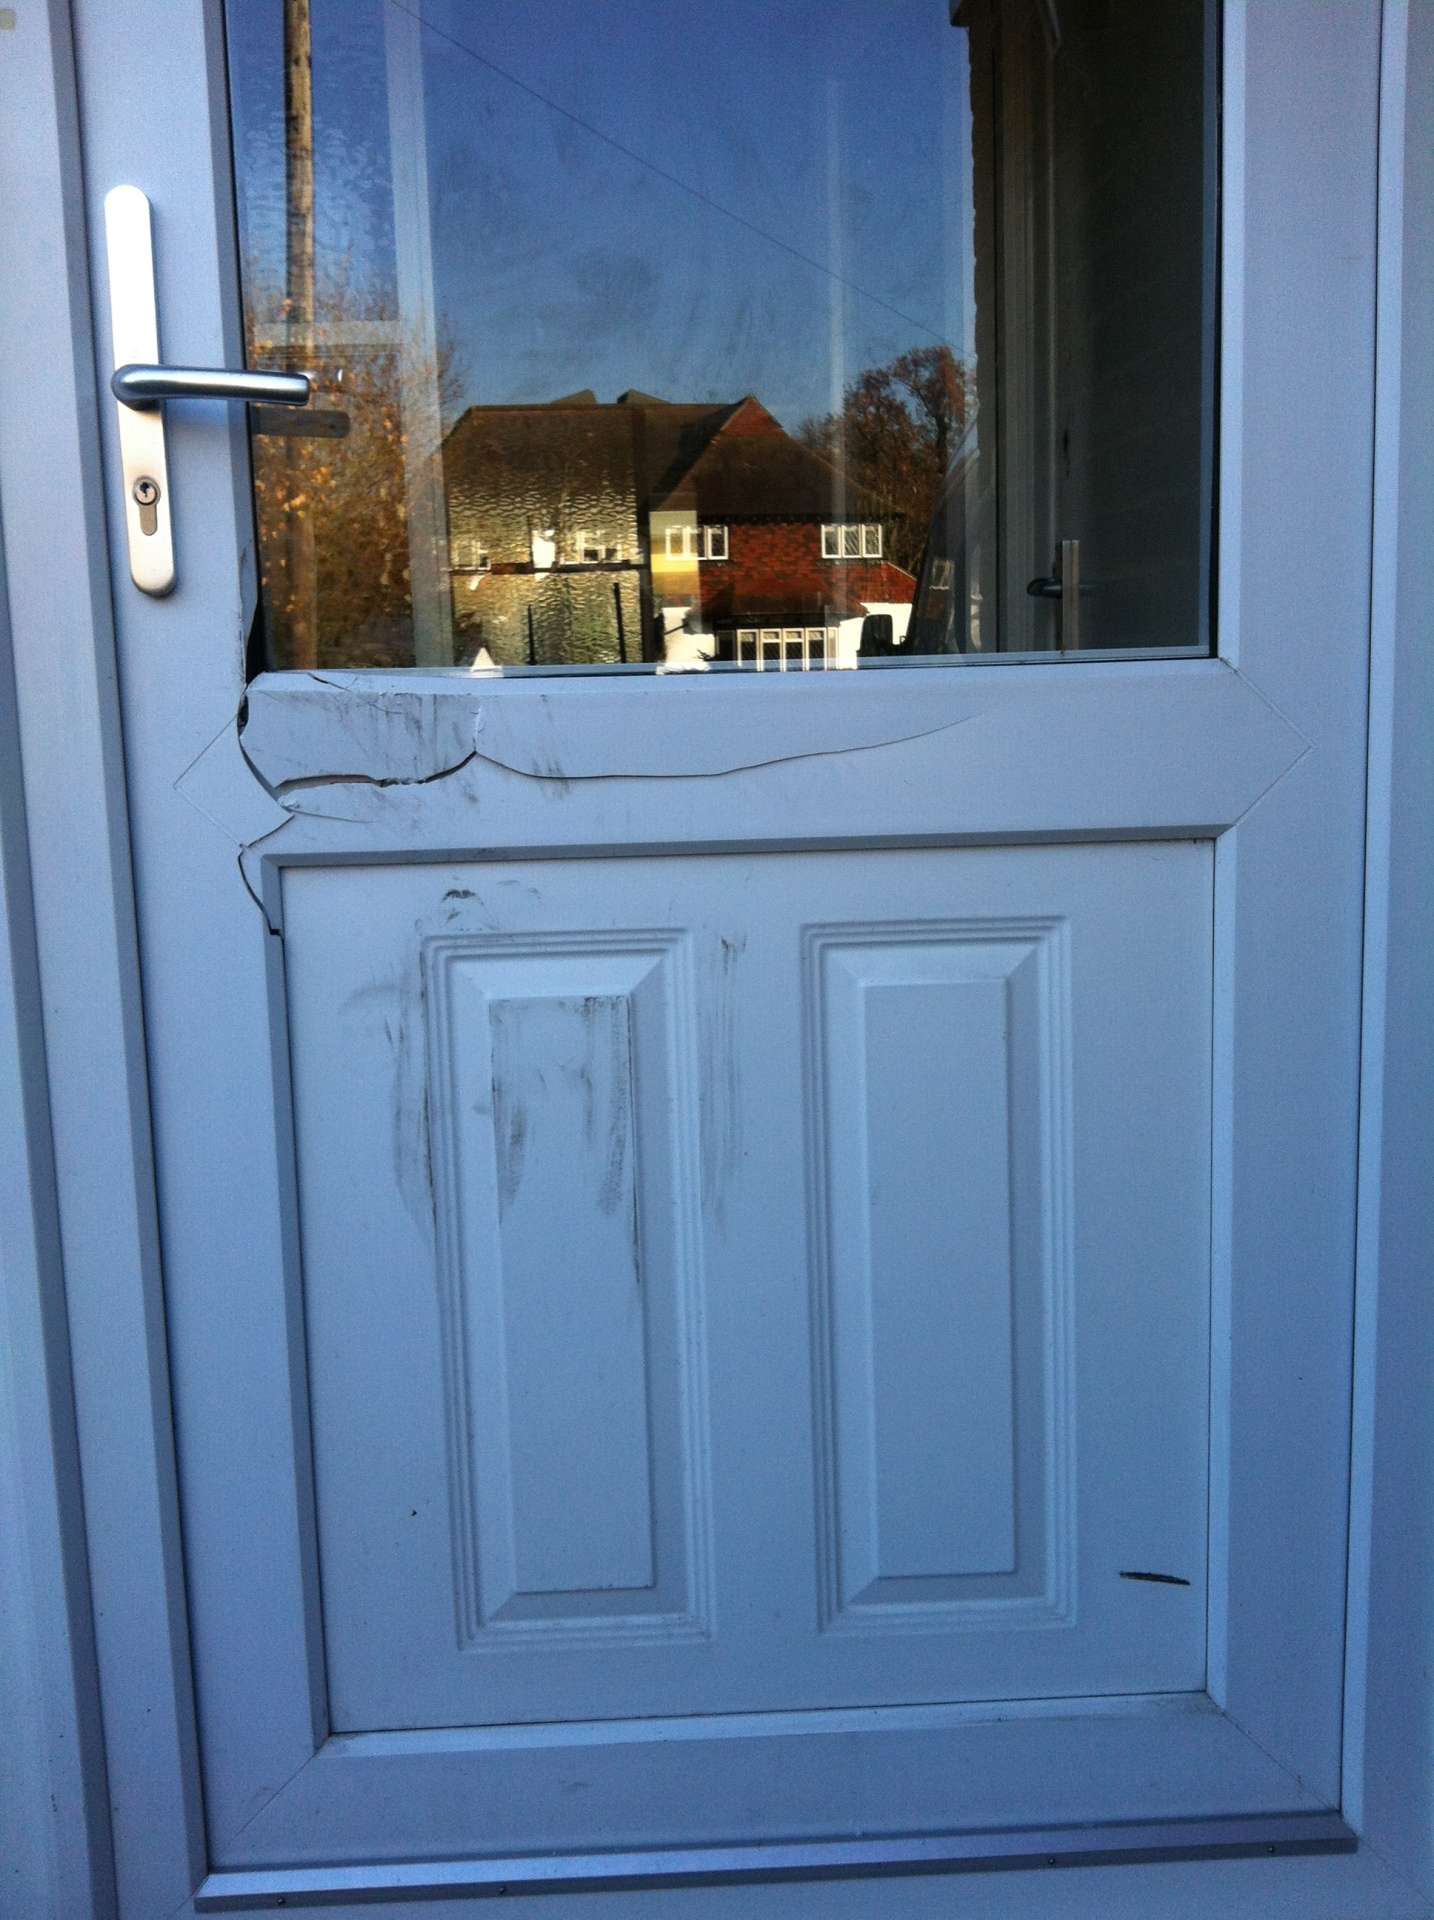 Forced entry by police 2